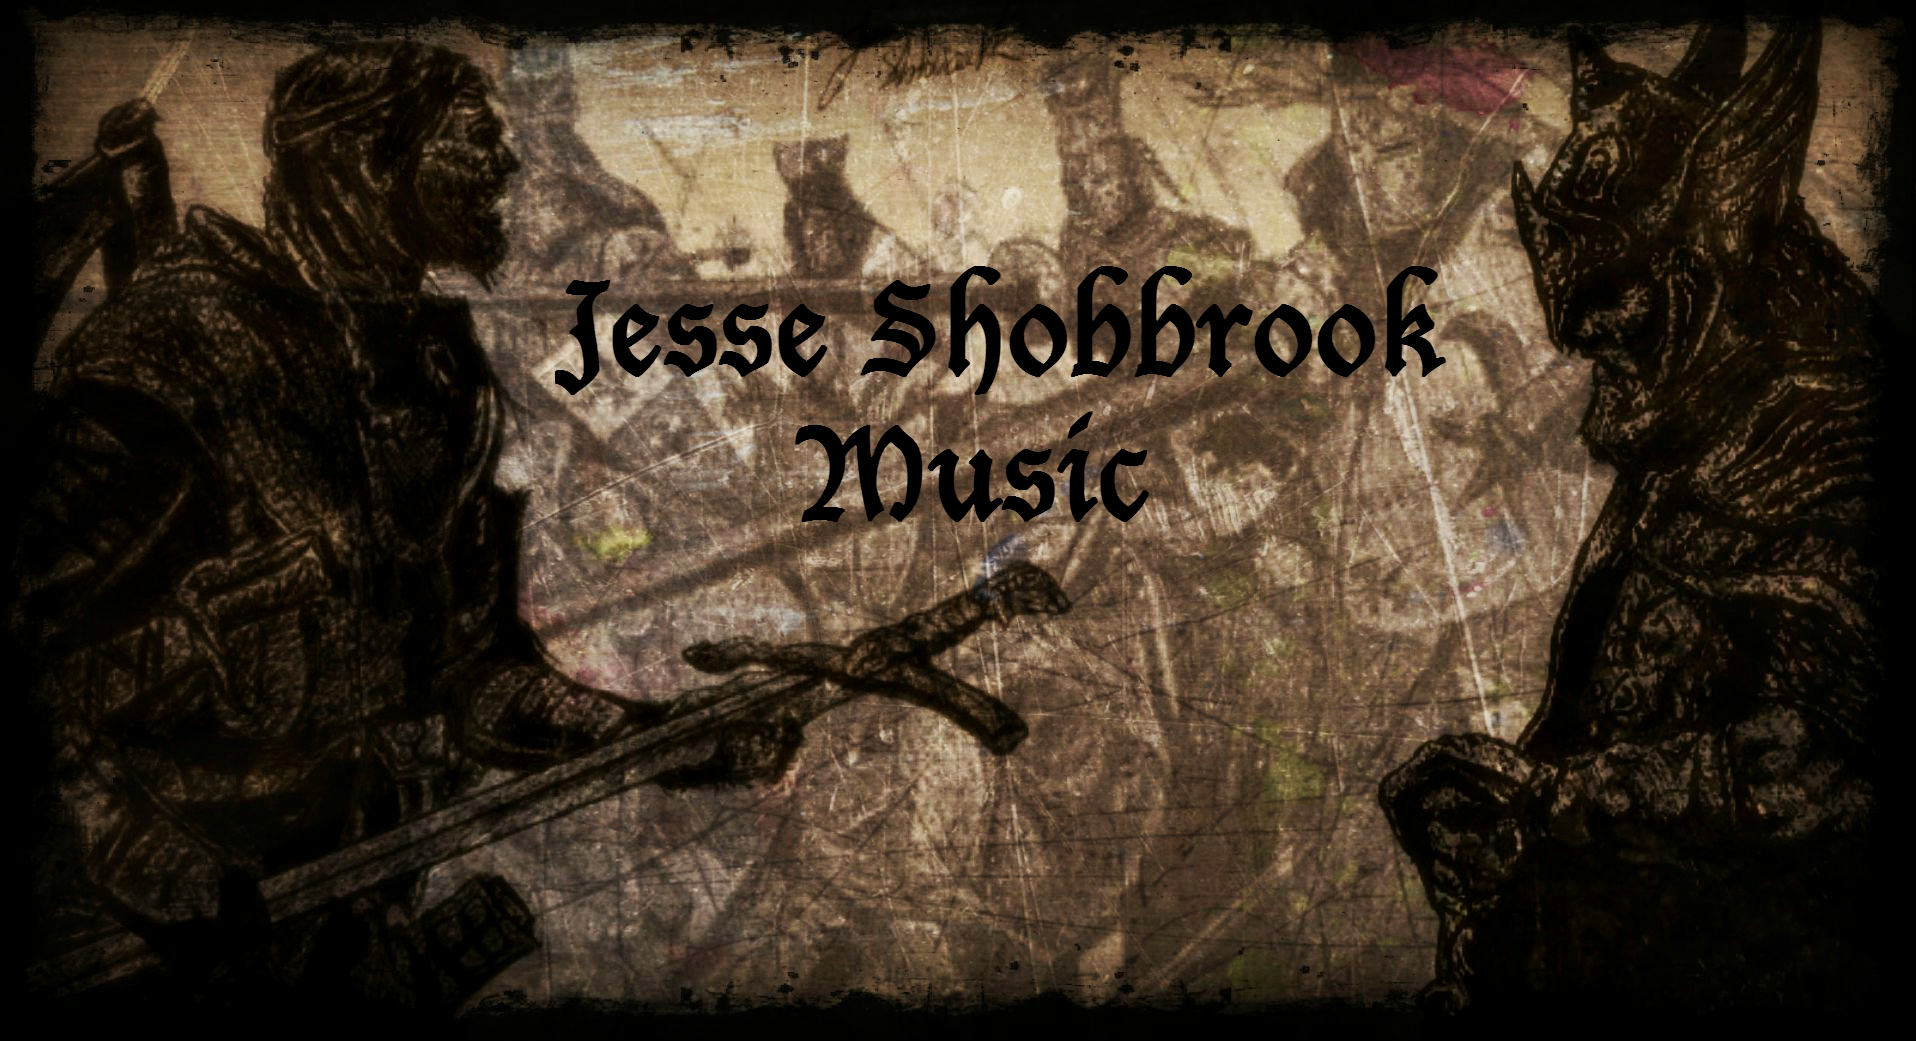 Jesse Shobbrook Art Work